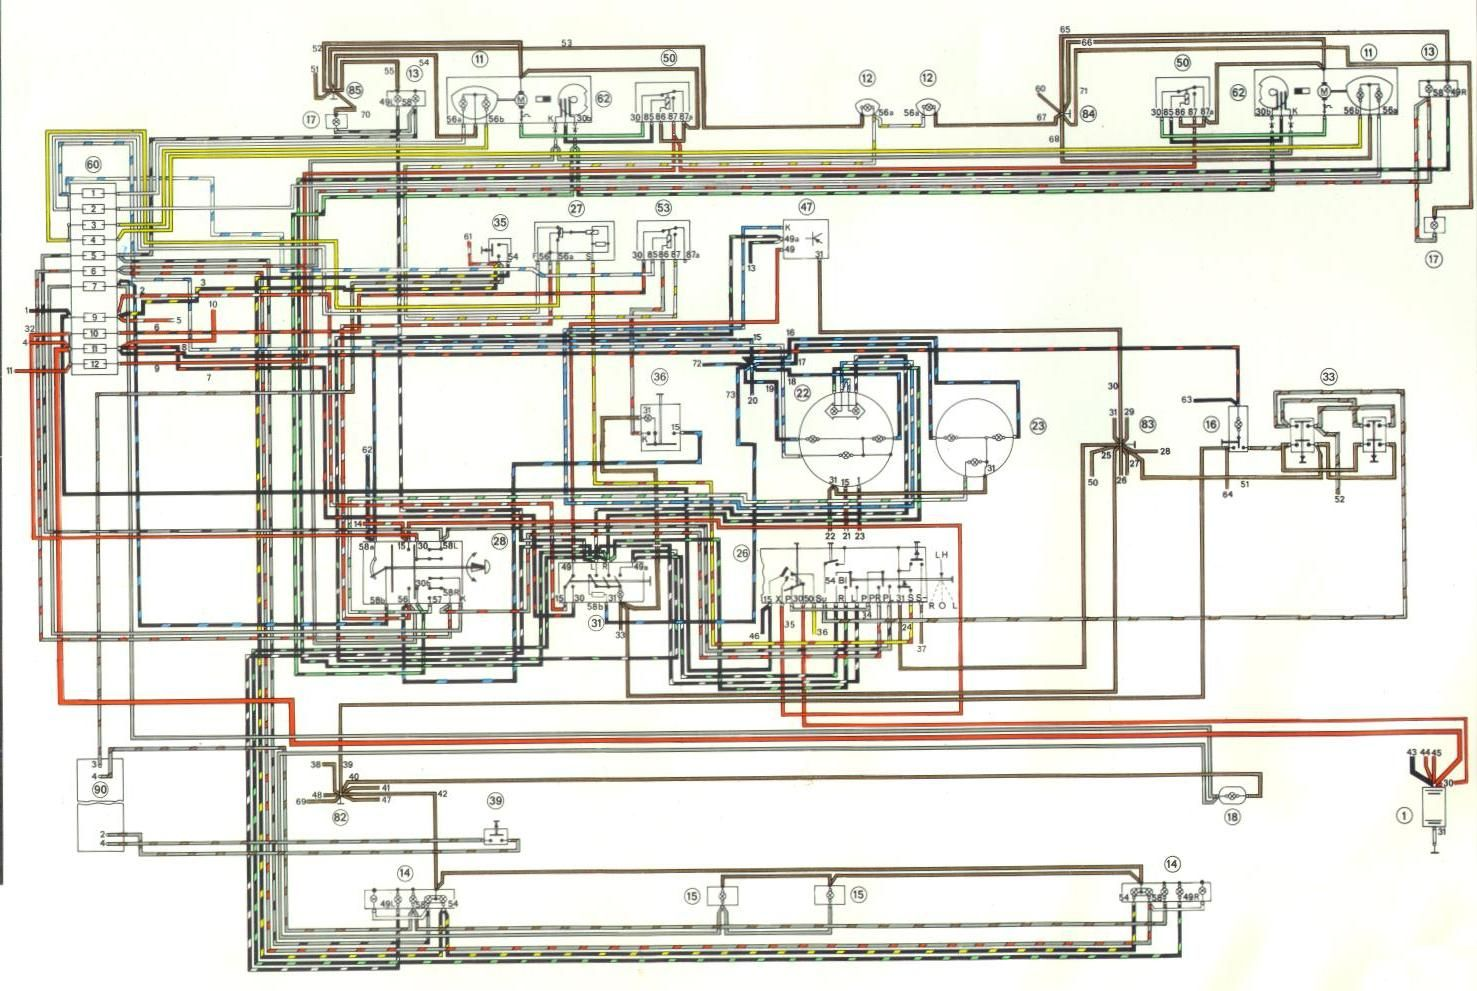 small resolution of 1974 porsche 914 engine diagram blog wiring diagramelectrical diagram 73 porsche 914 part 1 misc porsche